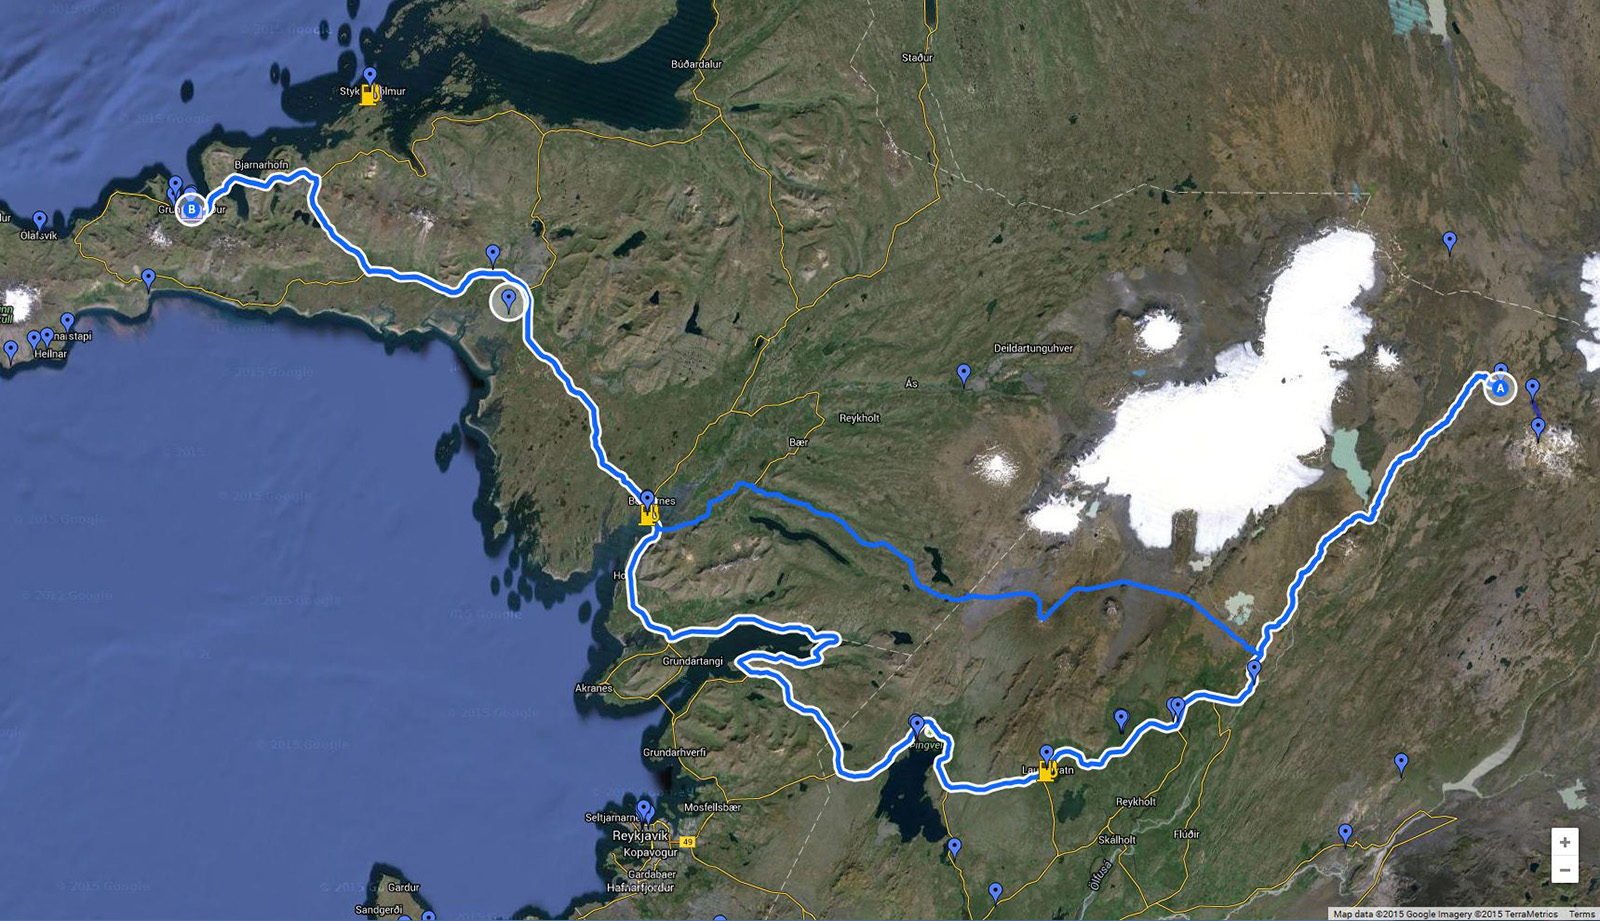 Google Maps chose the blue line as the 'best' route between Kerlingarfjoll and Grundarfjordur, but best for whom? Reseach and local knowledge suggests the longer, but safer route in blue/white. [Click to enlarge!]